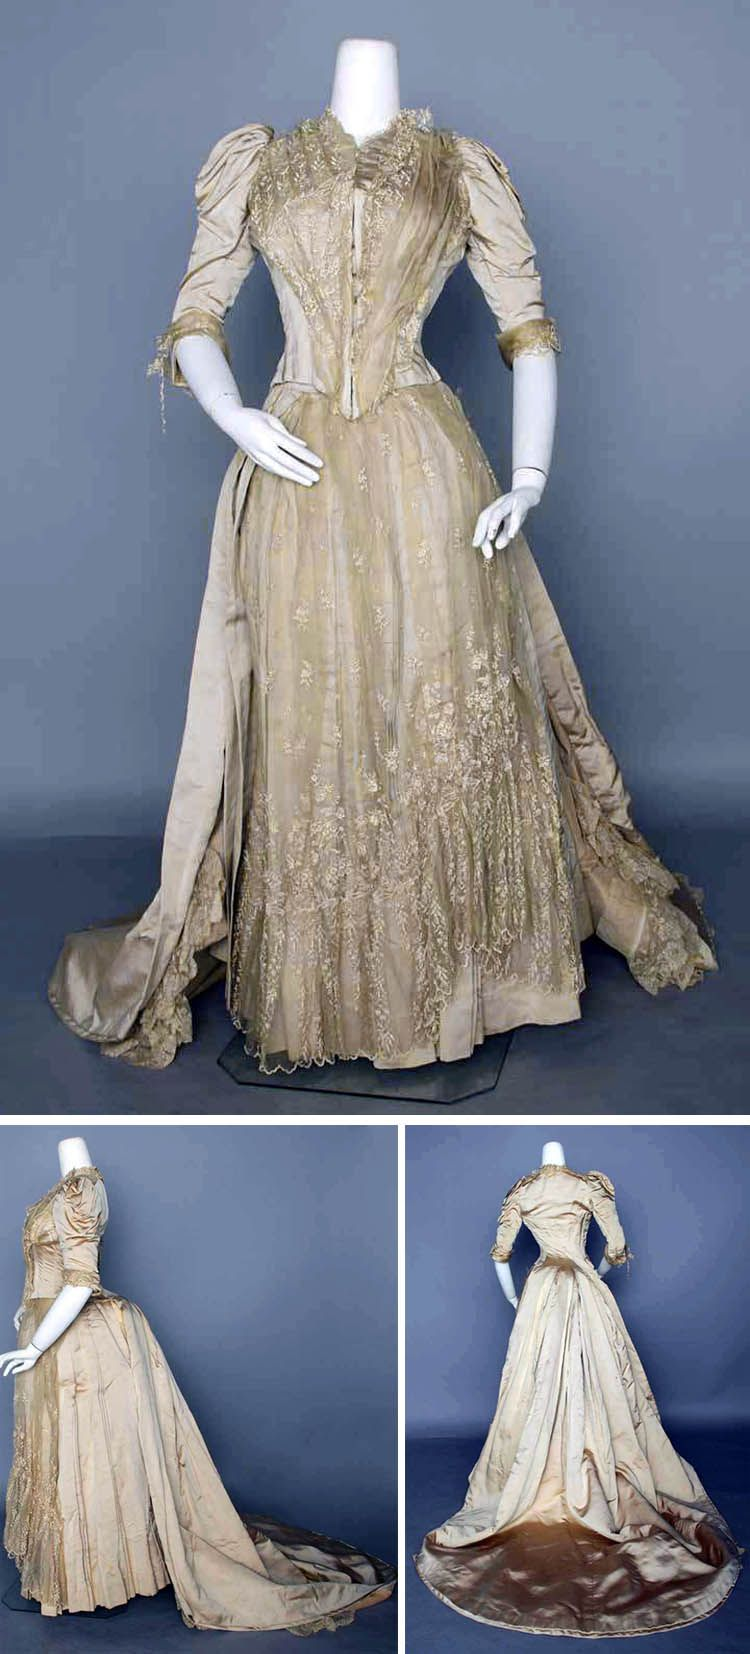 Wedding dress, 1880. Bonecolored silk with lace. Two